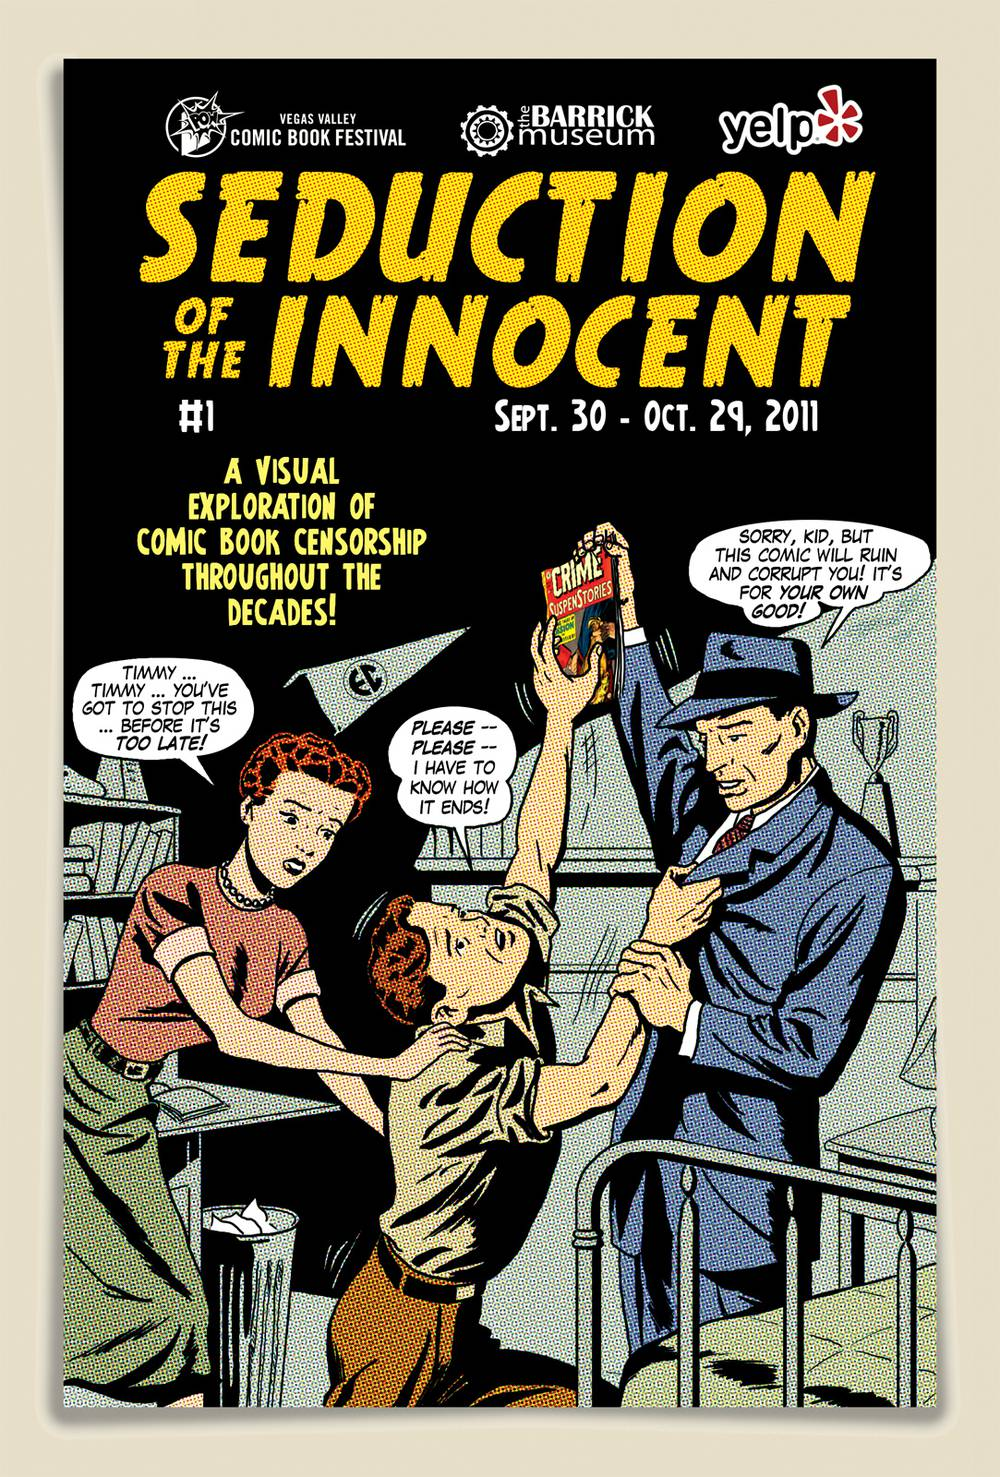 Comic Book Cover Artist Wanted : Banned books barrick exhibit details the life of comic